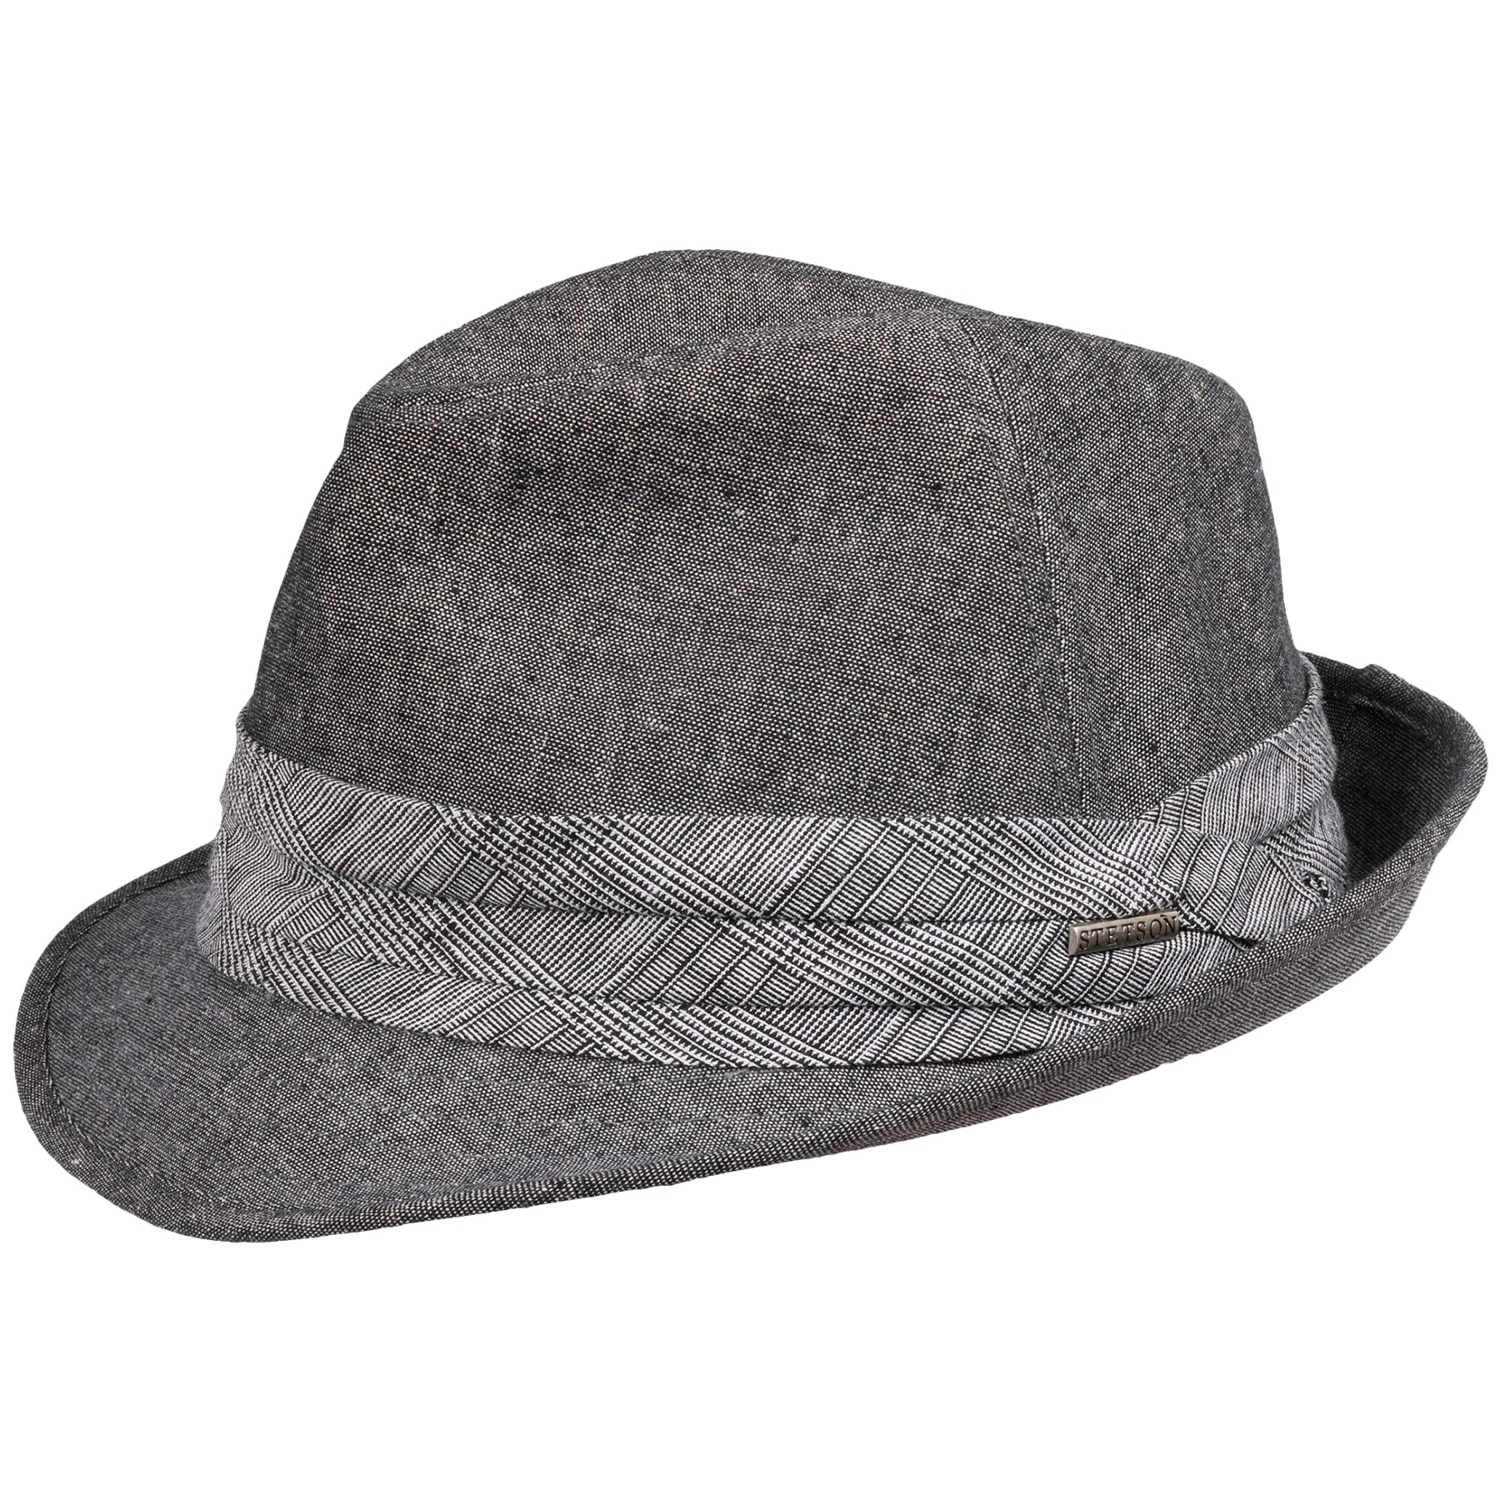 c123ebb91ed13 Stetson Woven Fedora Hat - Linen-Cotton (For Men) - Save 52%